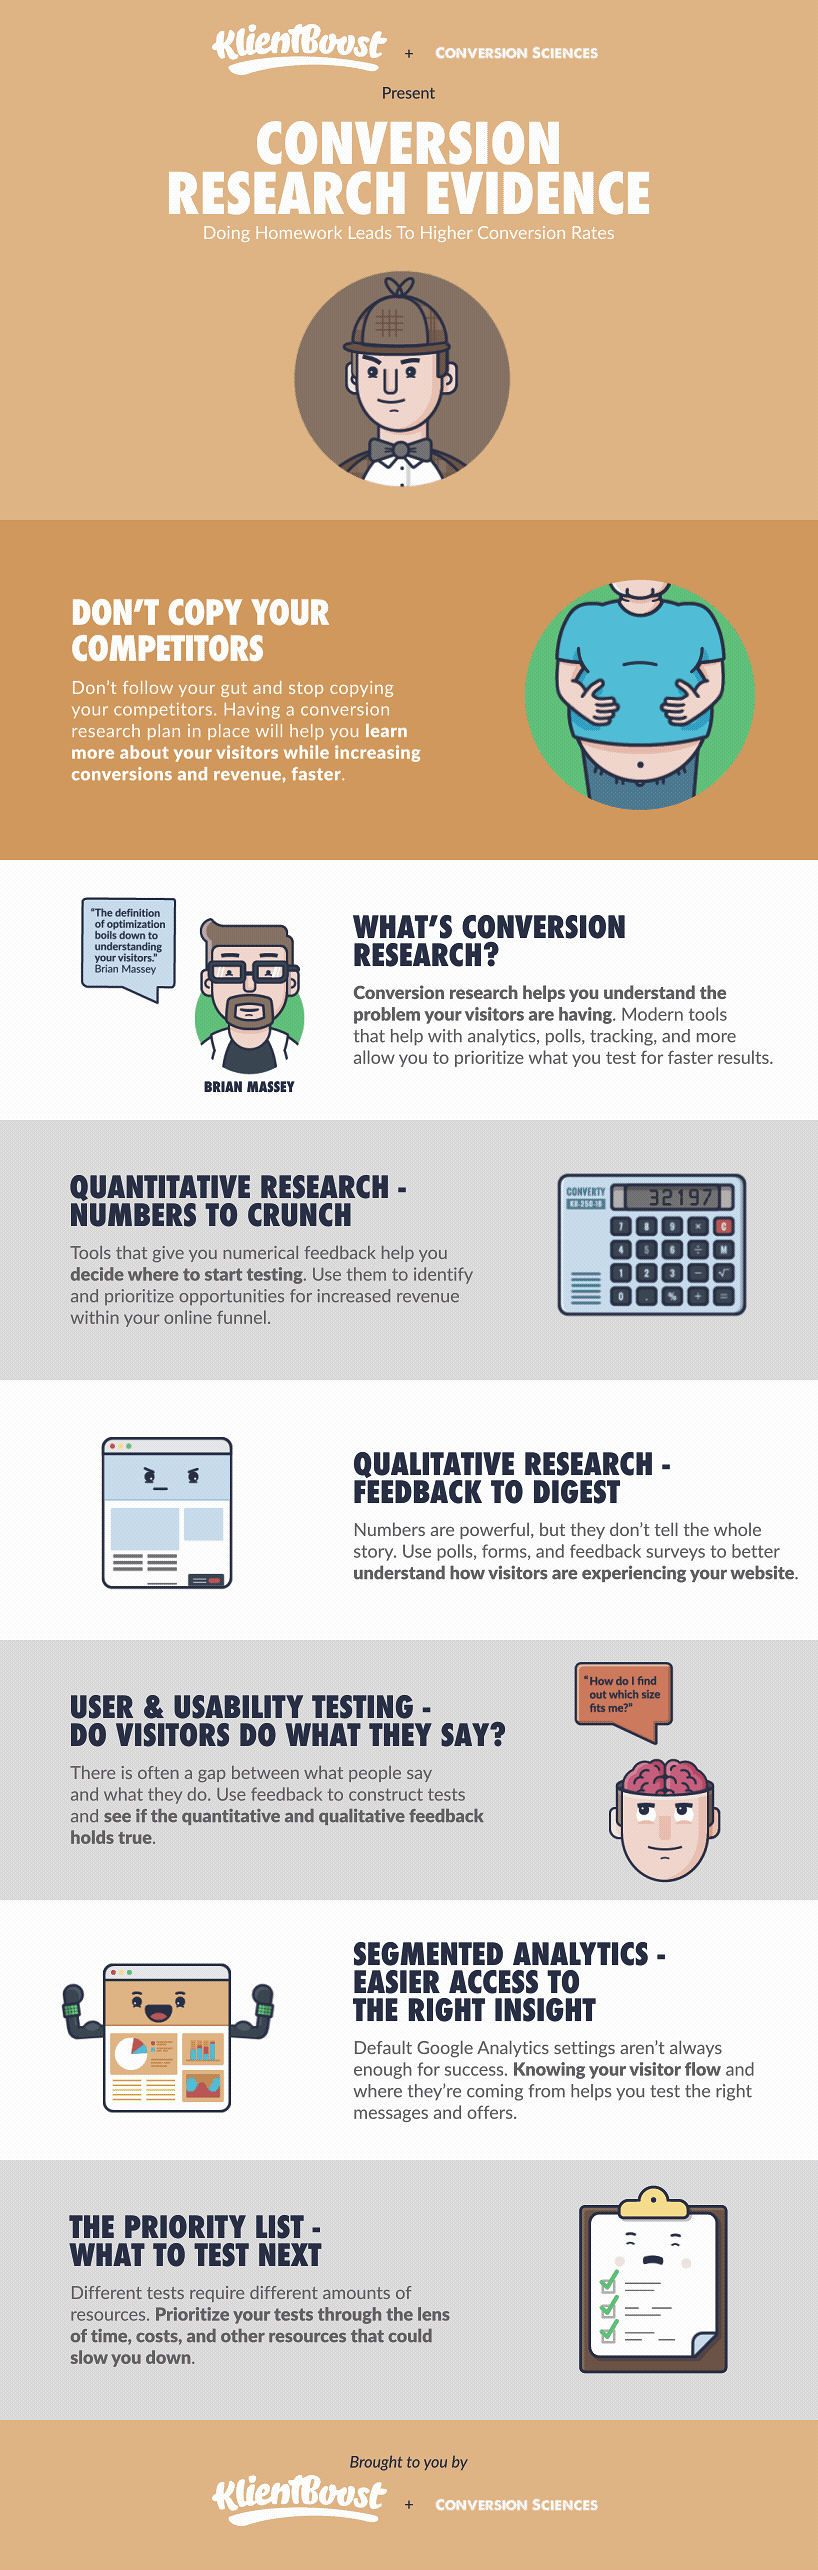 Conversion Research Evidence with Klientboost Infographic